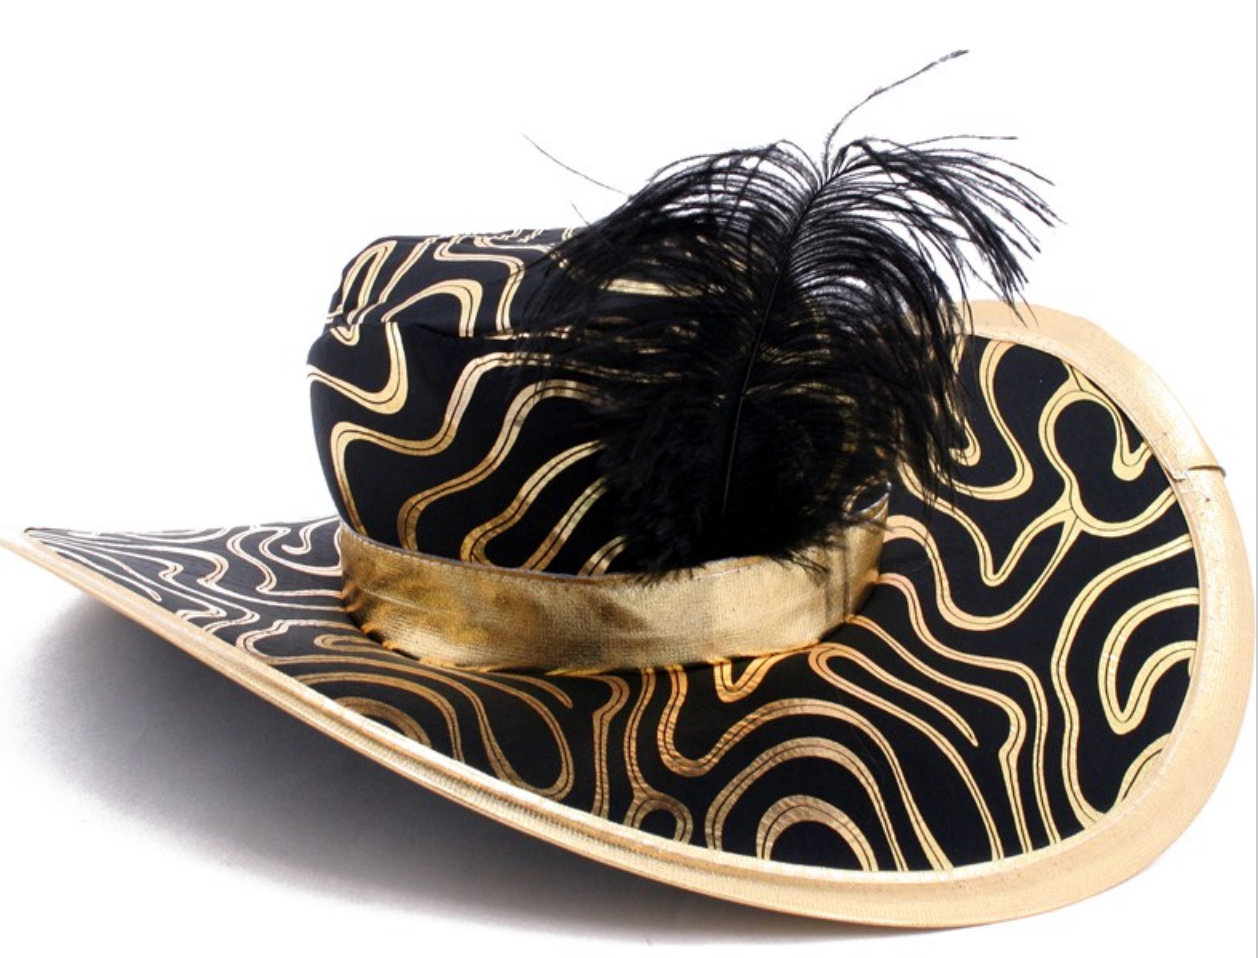 Pin By Photobooth Etc On Need A Prop Gold Hats Black Feathers Black Gold